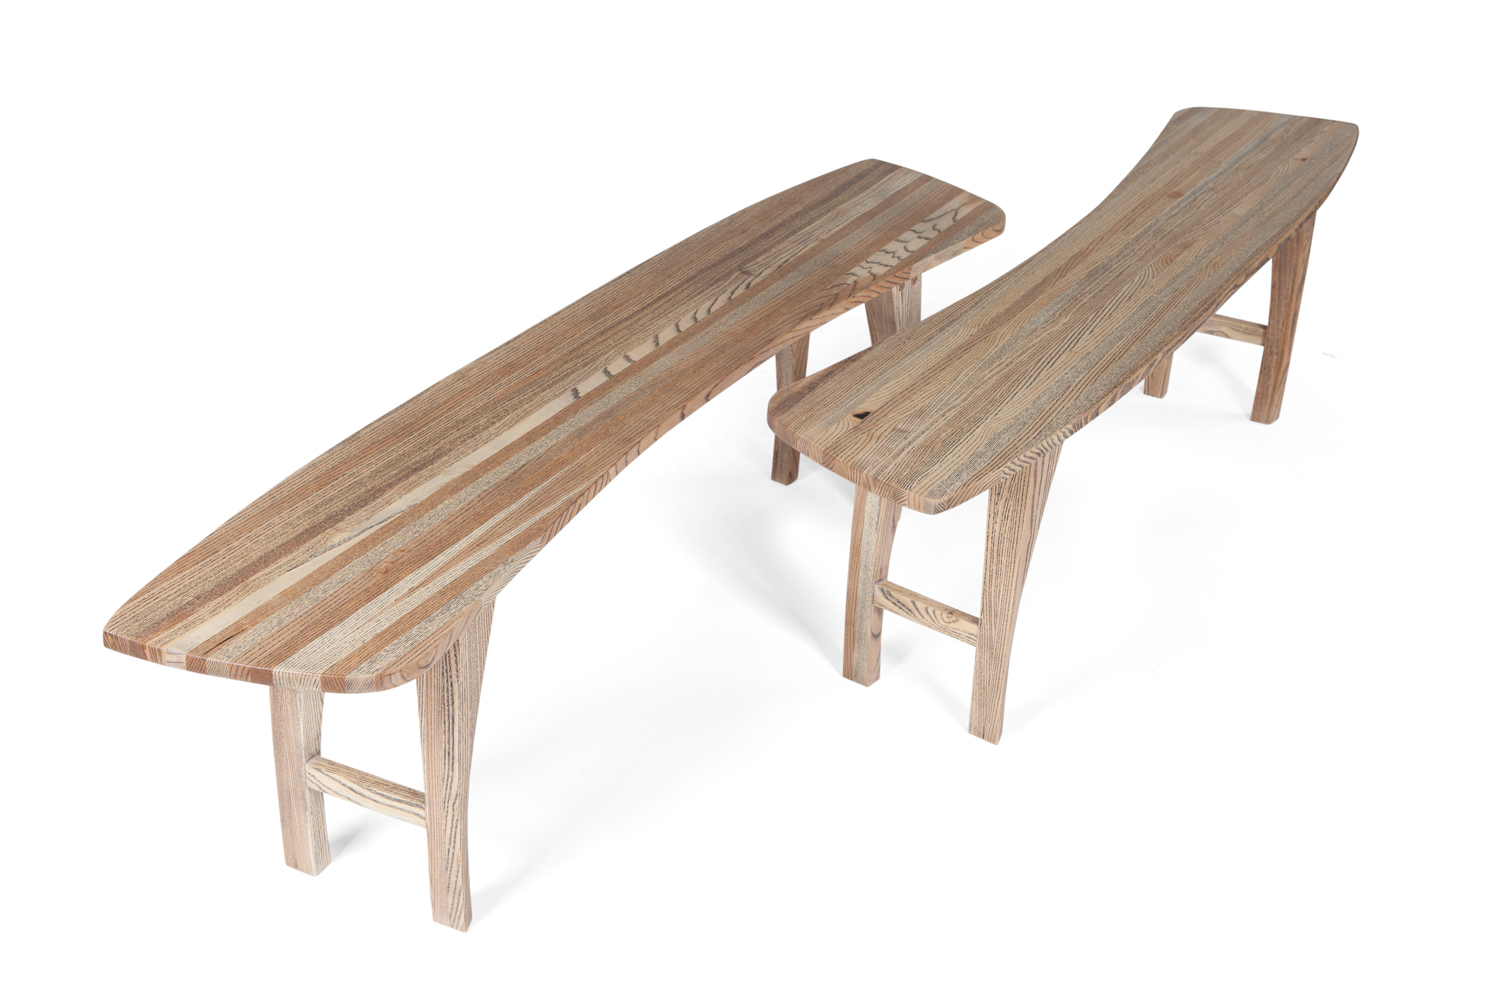 10_Ebony-grained-ash-dining-benches_1.jpg